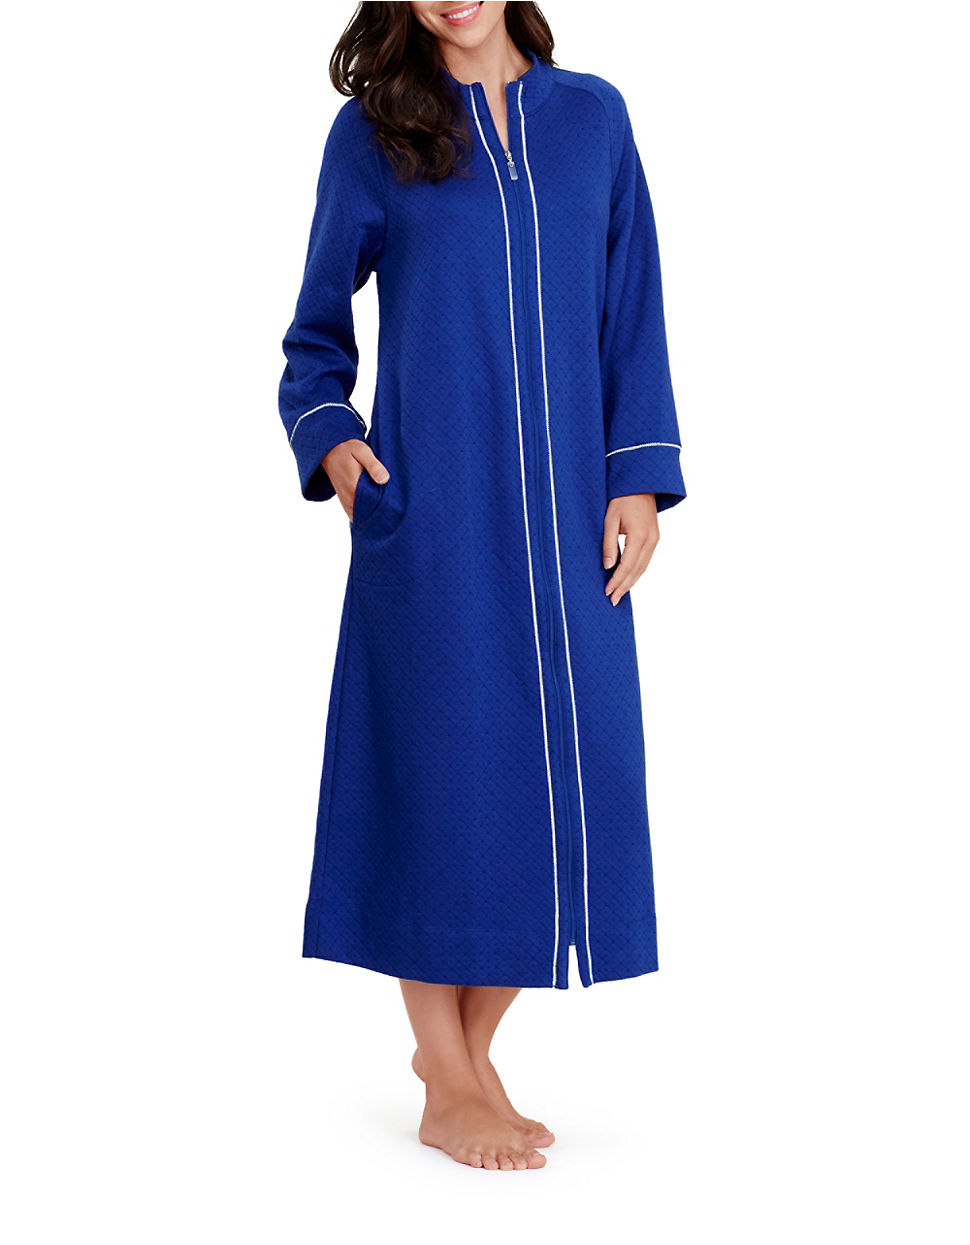 Free shipping BOTH ways on womens petite fleece robes zip front, from our vast selection of styles. Fast delivery, and 24/7/ real-person service with a smile. Click or call